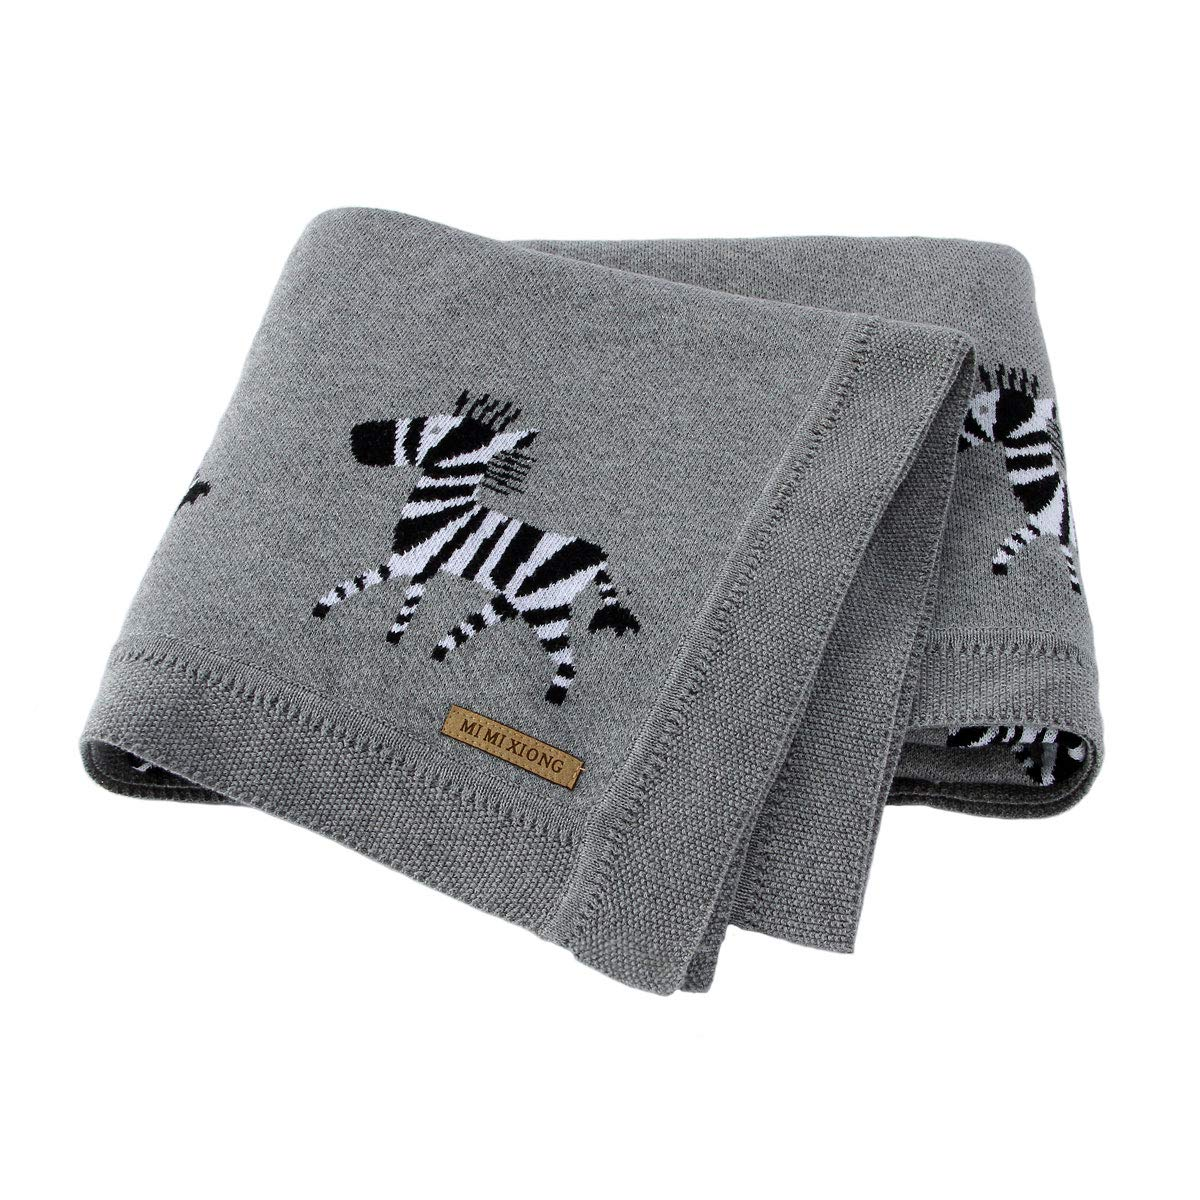 mimixiong 100% Pure Cotton Baby Blankets Soft Nursery Blanket for Newborn Baby with Cute Zebra Grey Size 30 x 40 inches